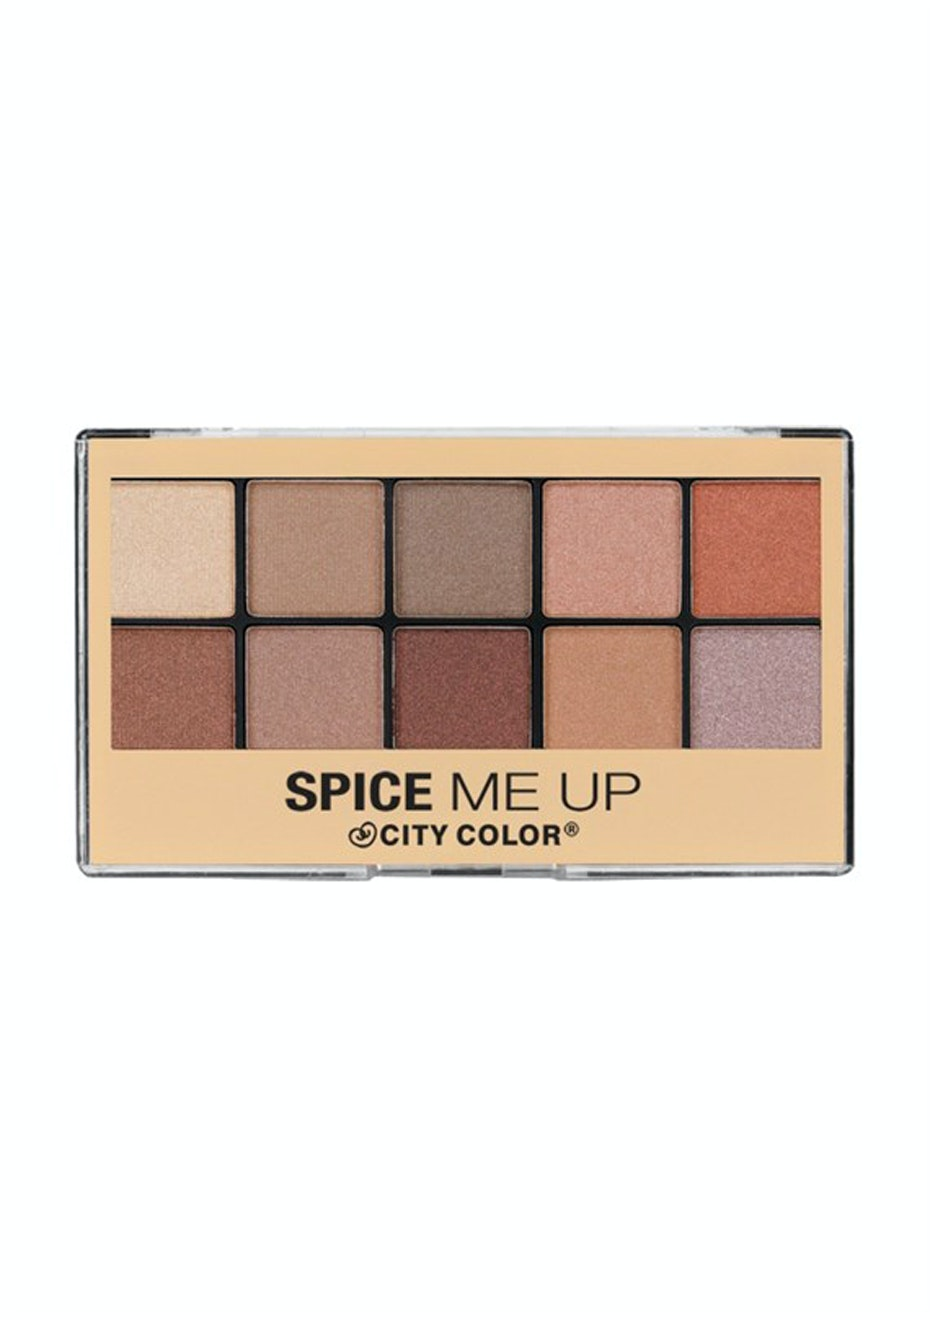 CITY COLOR - SPICE ME UP EYE SHADOW PALETTE